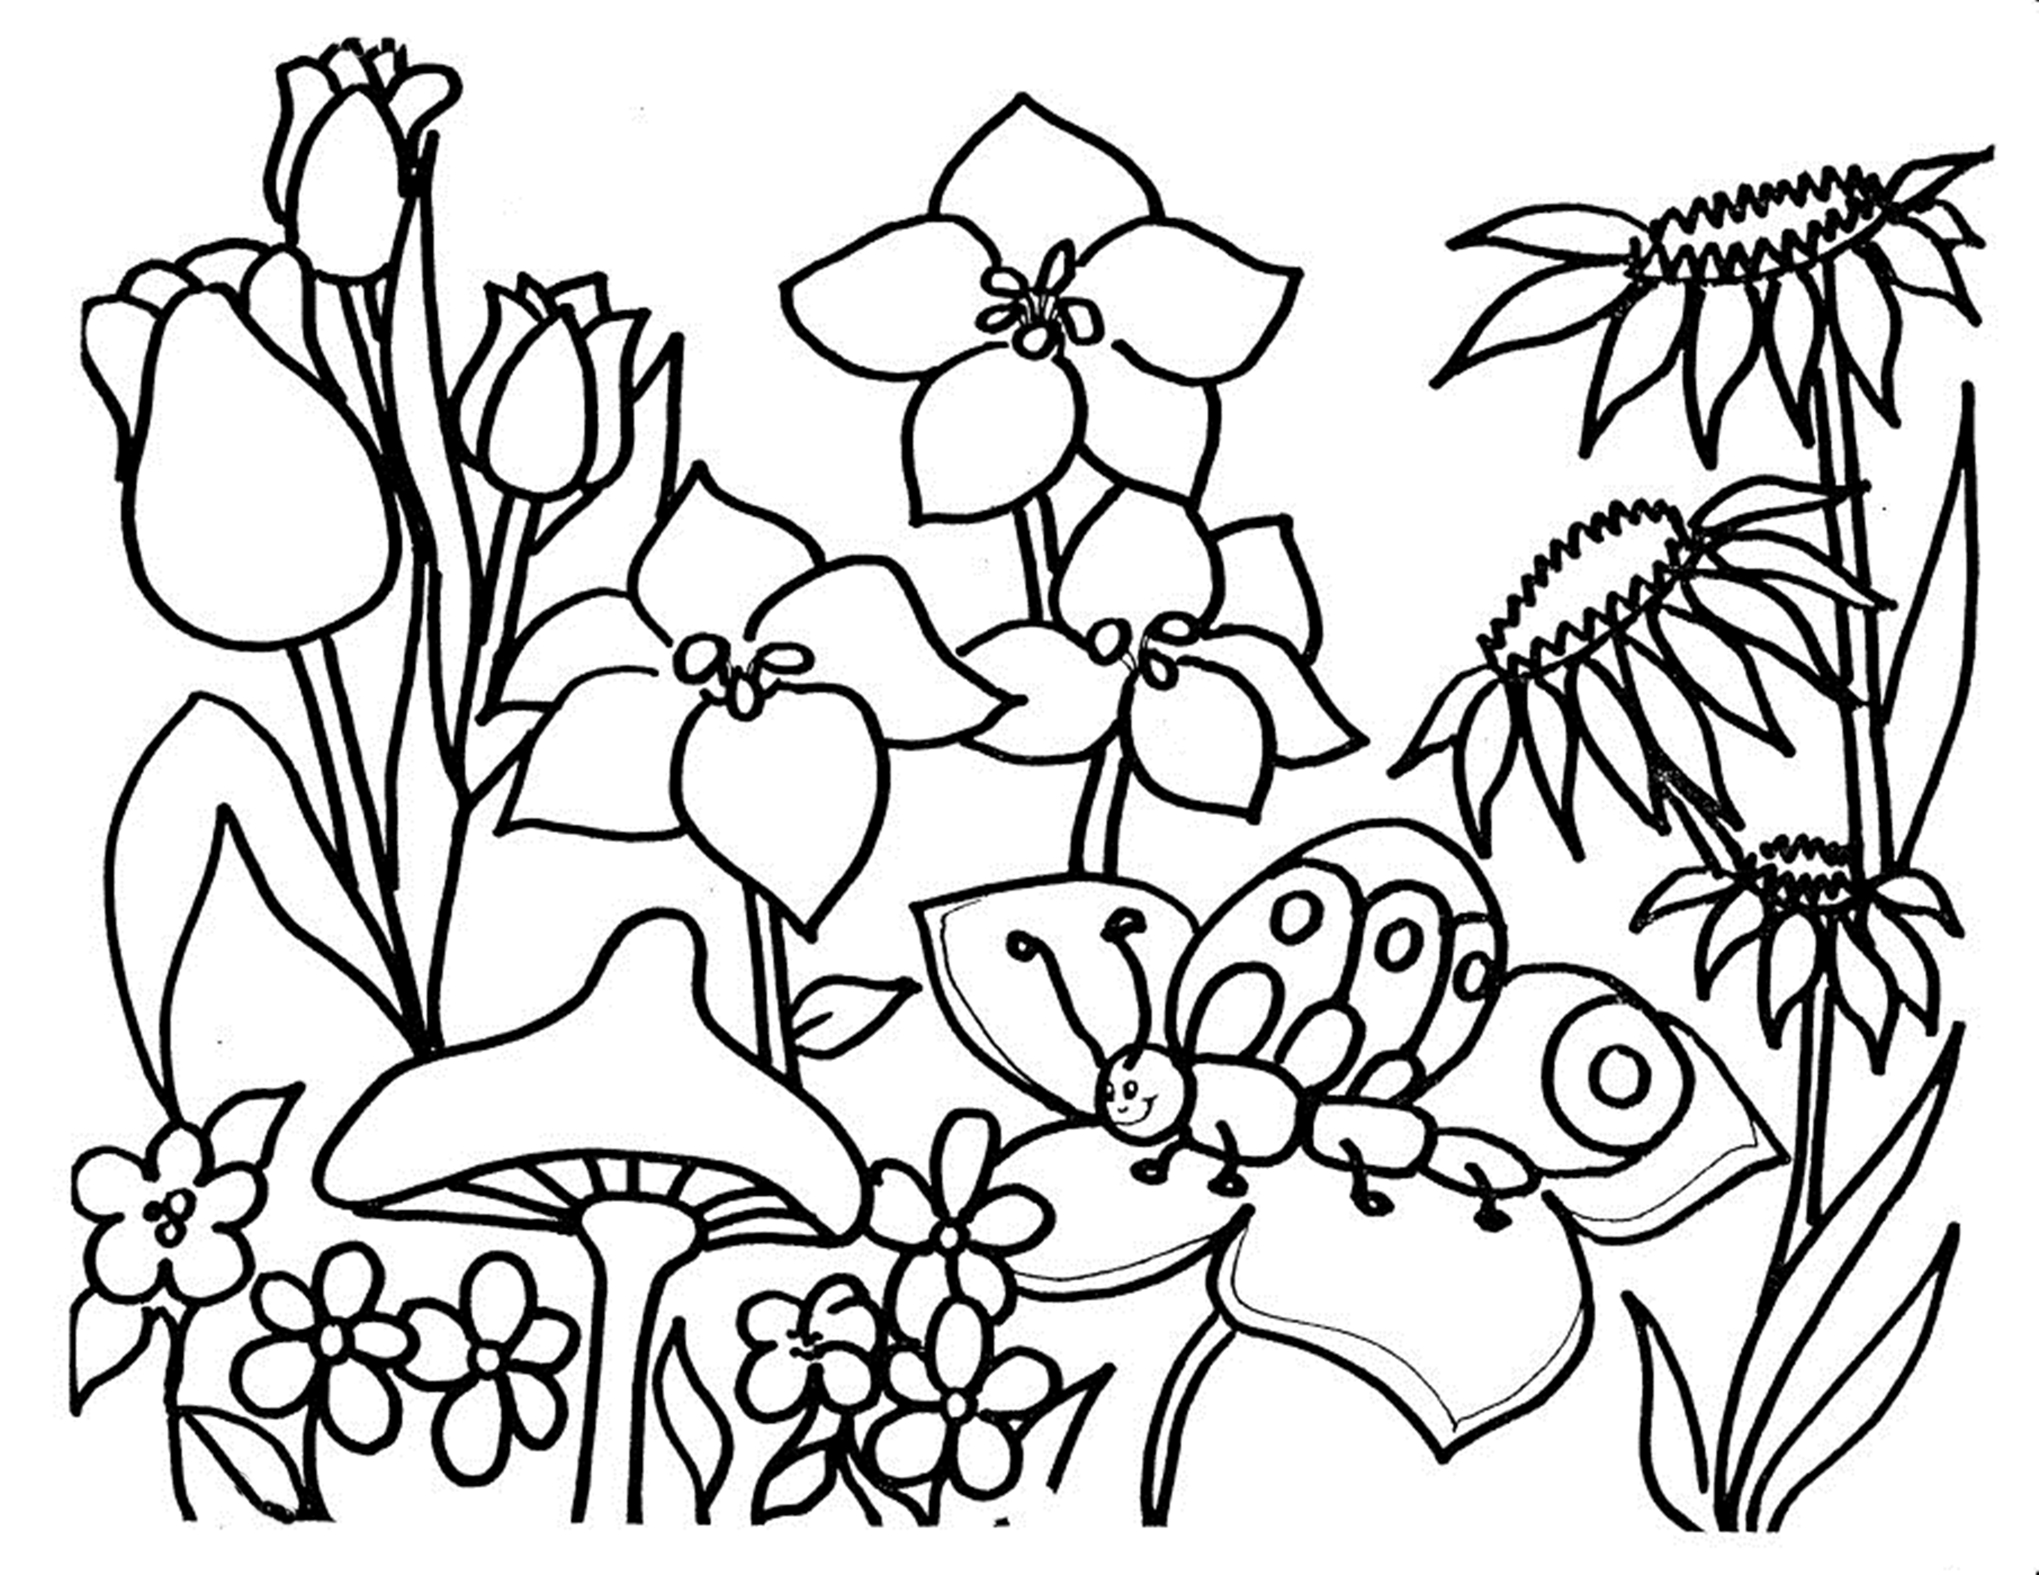 flowers coloring pages printable free printable flower coloring pages for kids best flowers printable coloring pages